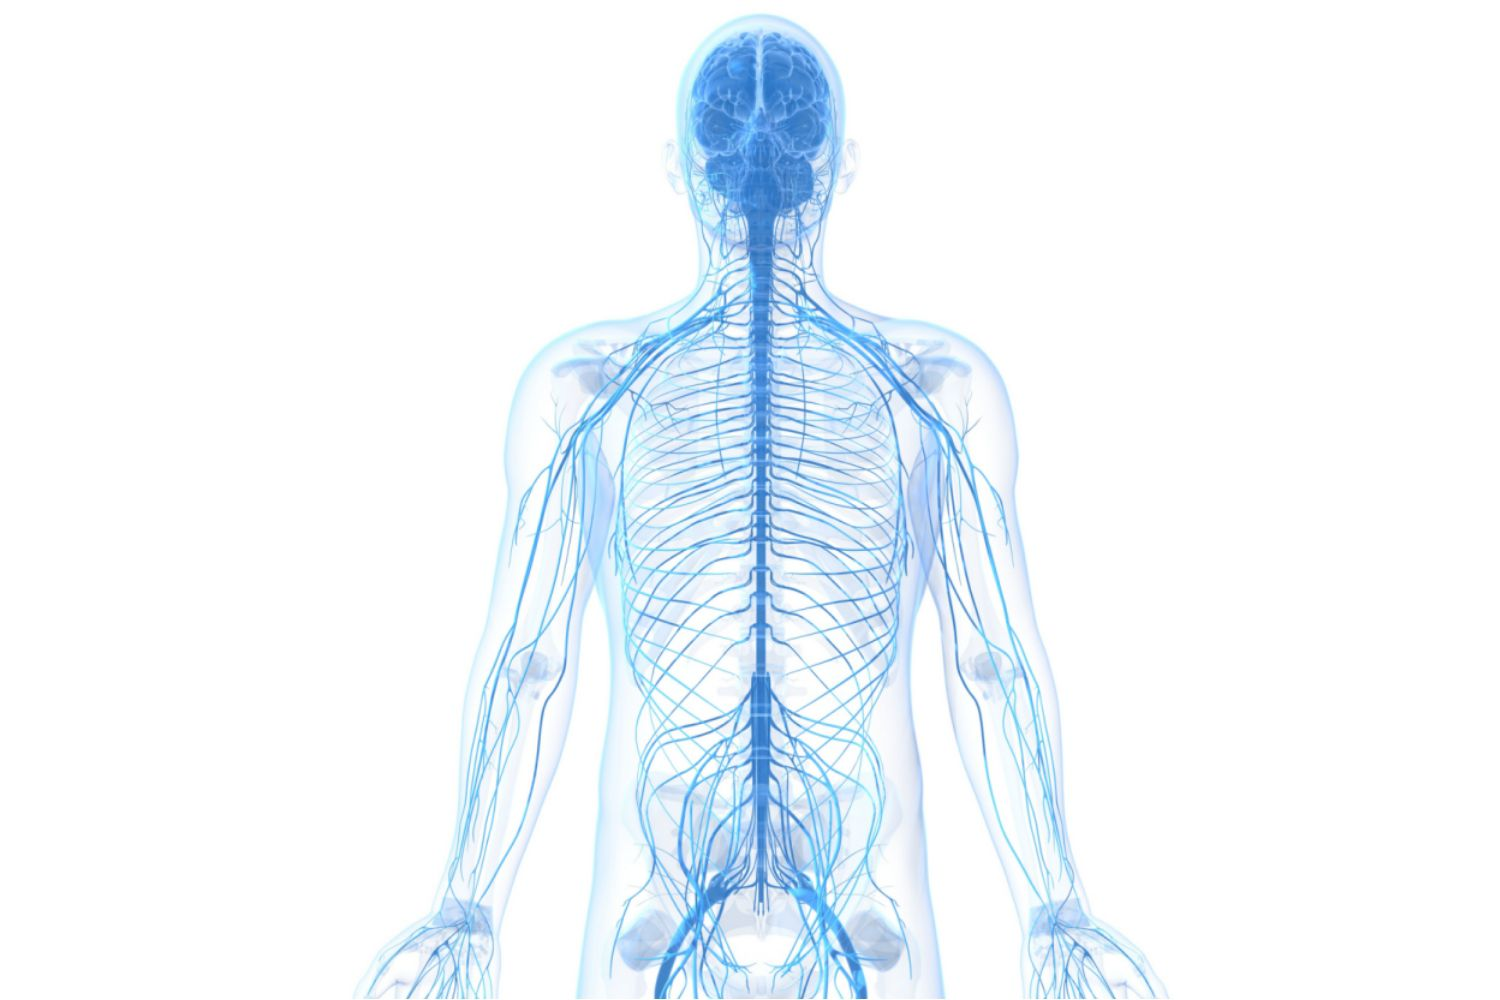 Learn About The Peripheral Nervous System